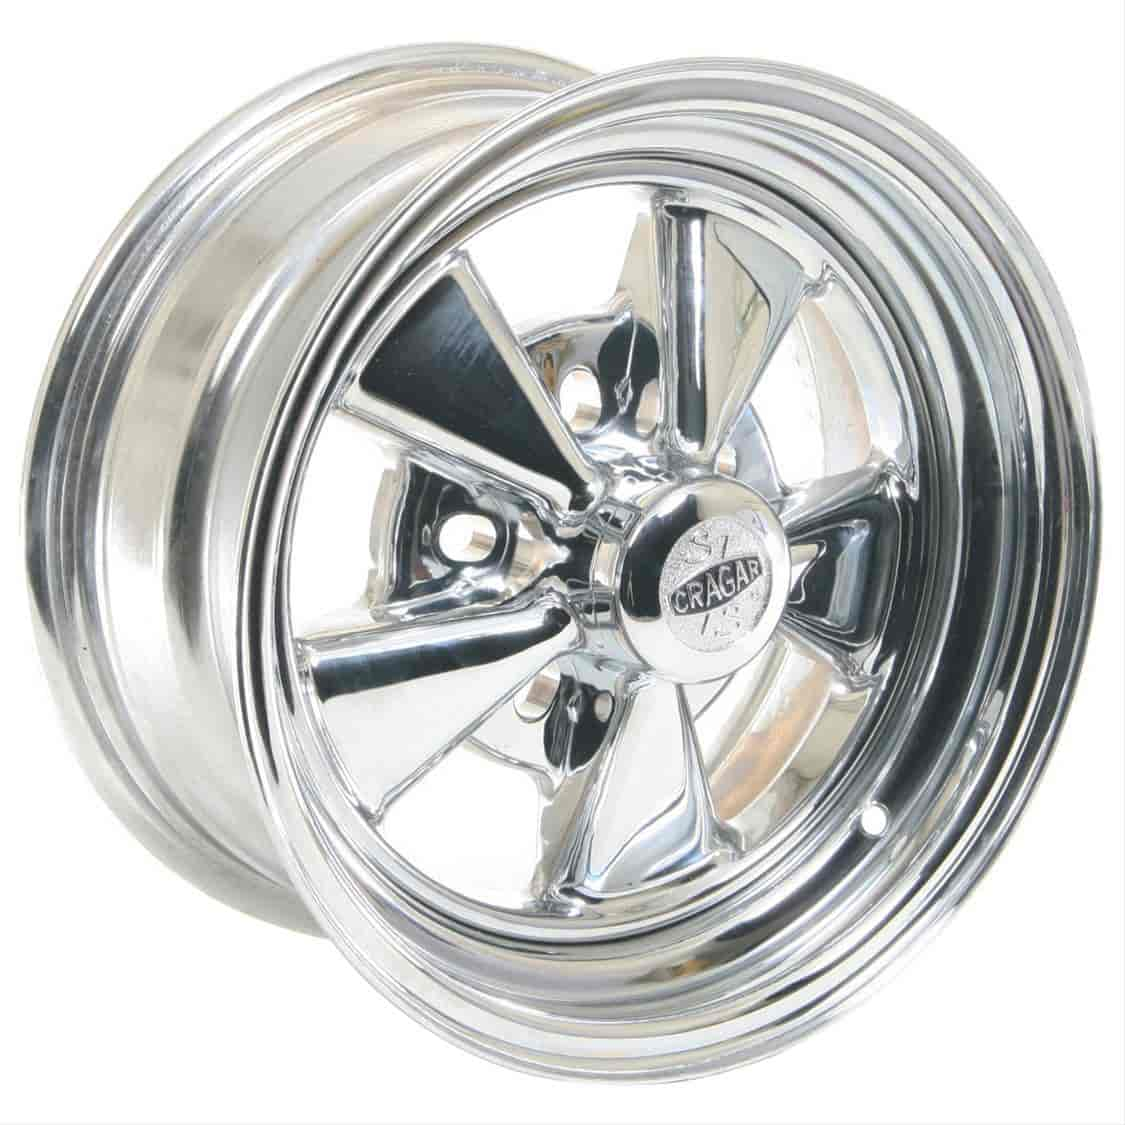 Cragar 08050 - Cragar 08/61 Series S/S Super Sport Wheels